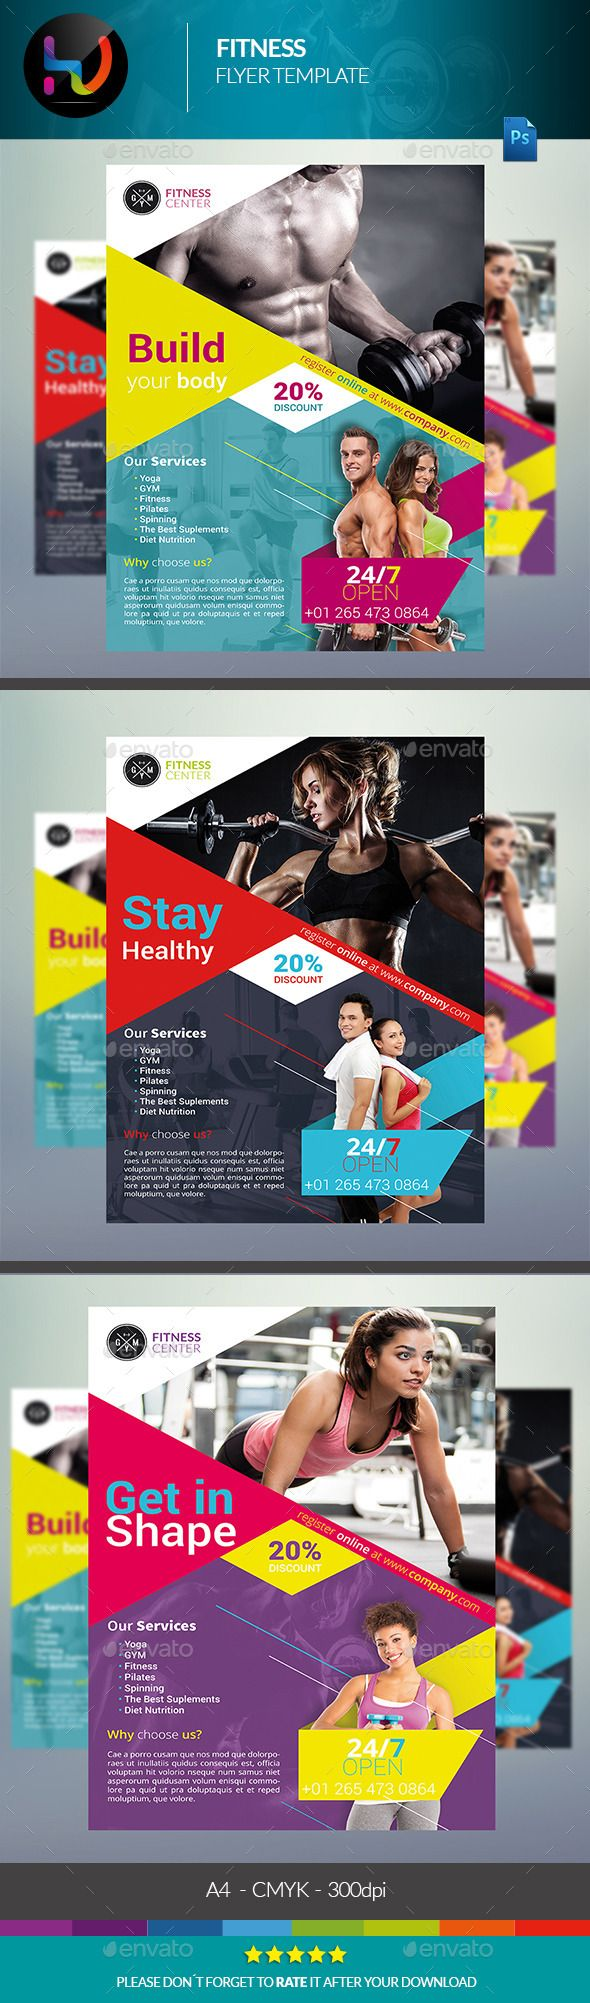 Pin By Best Graphic Design On Flyer Templates Pinterest Fitness